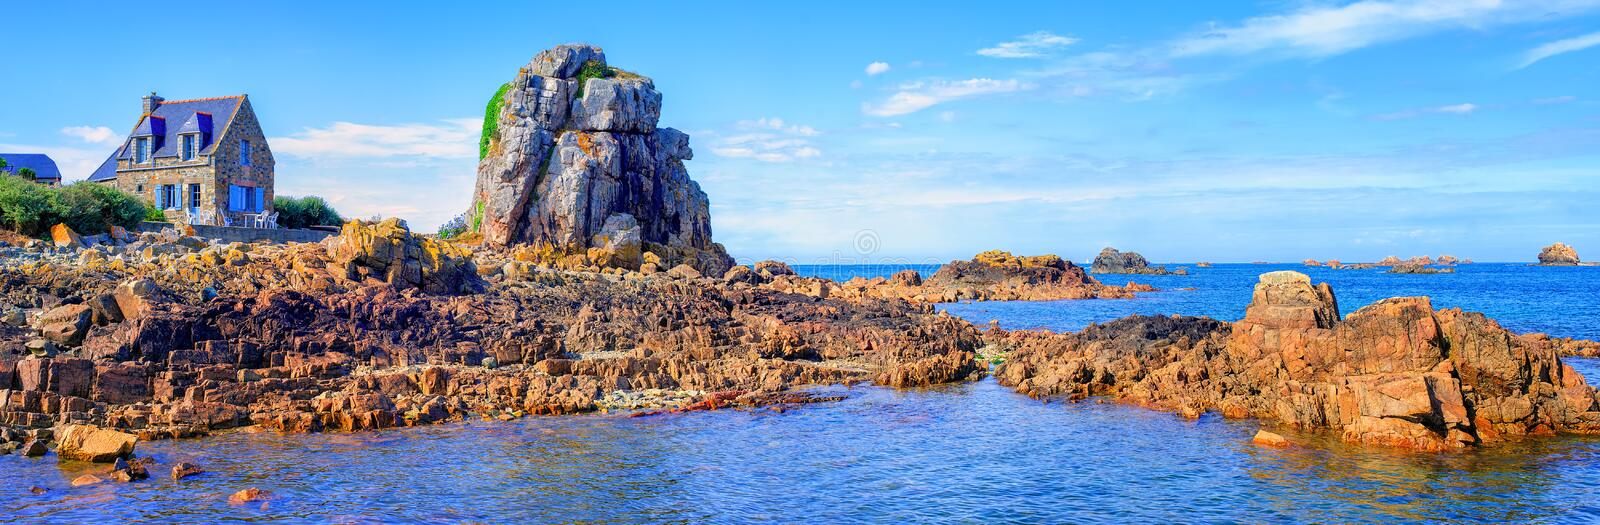 Panoramic view of the atlantic coast of English Channel, Brittany, France royalty free stock photo